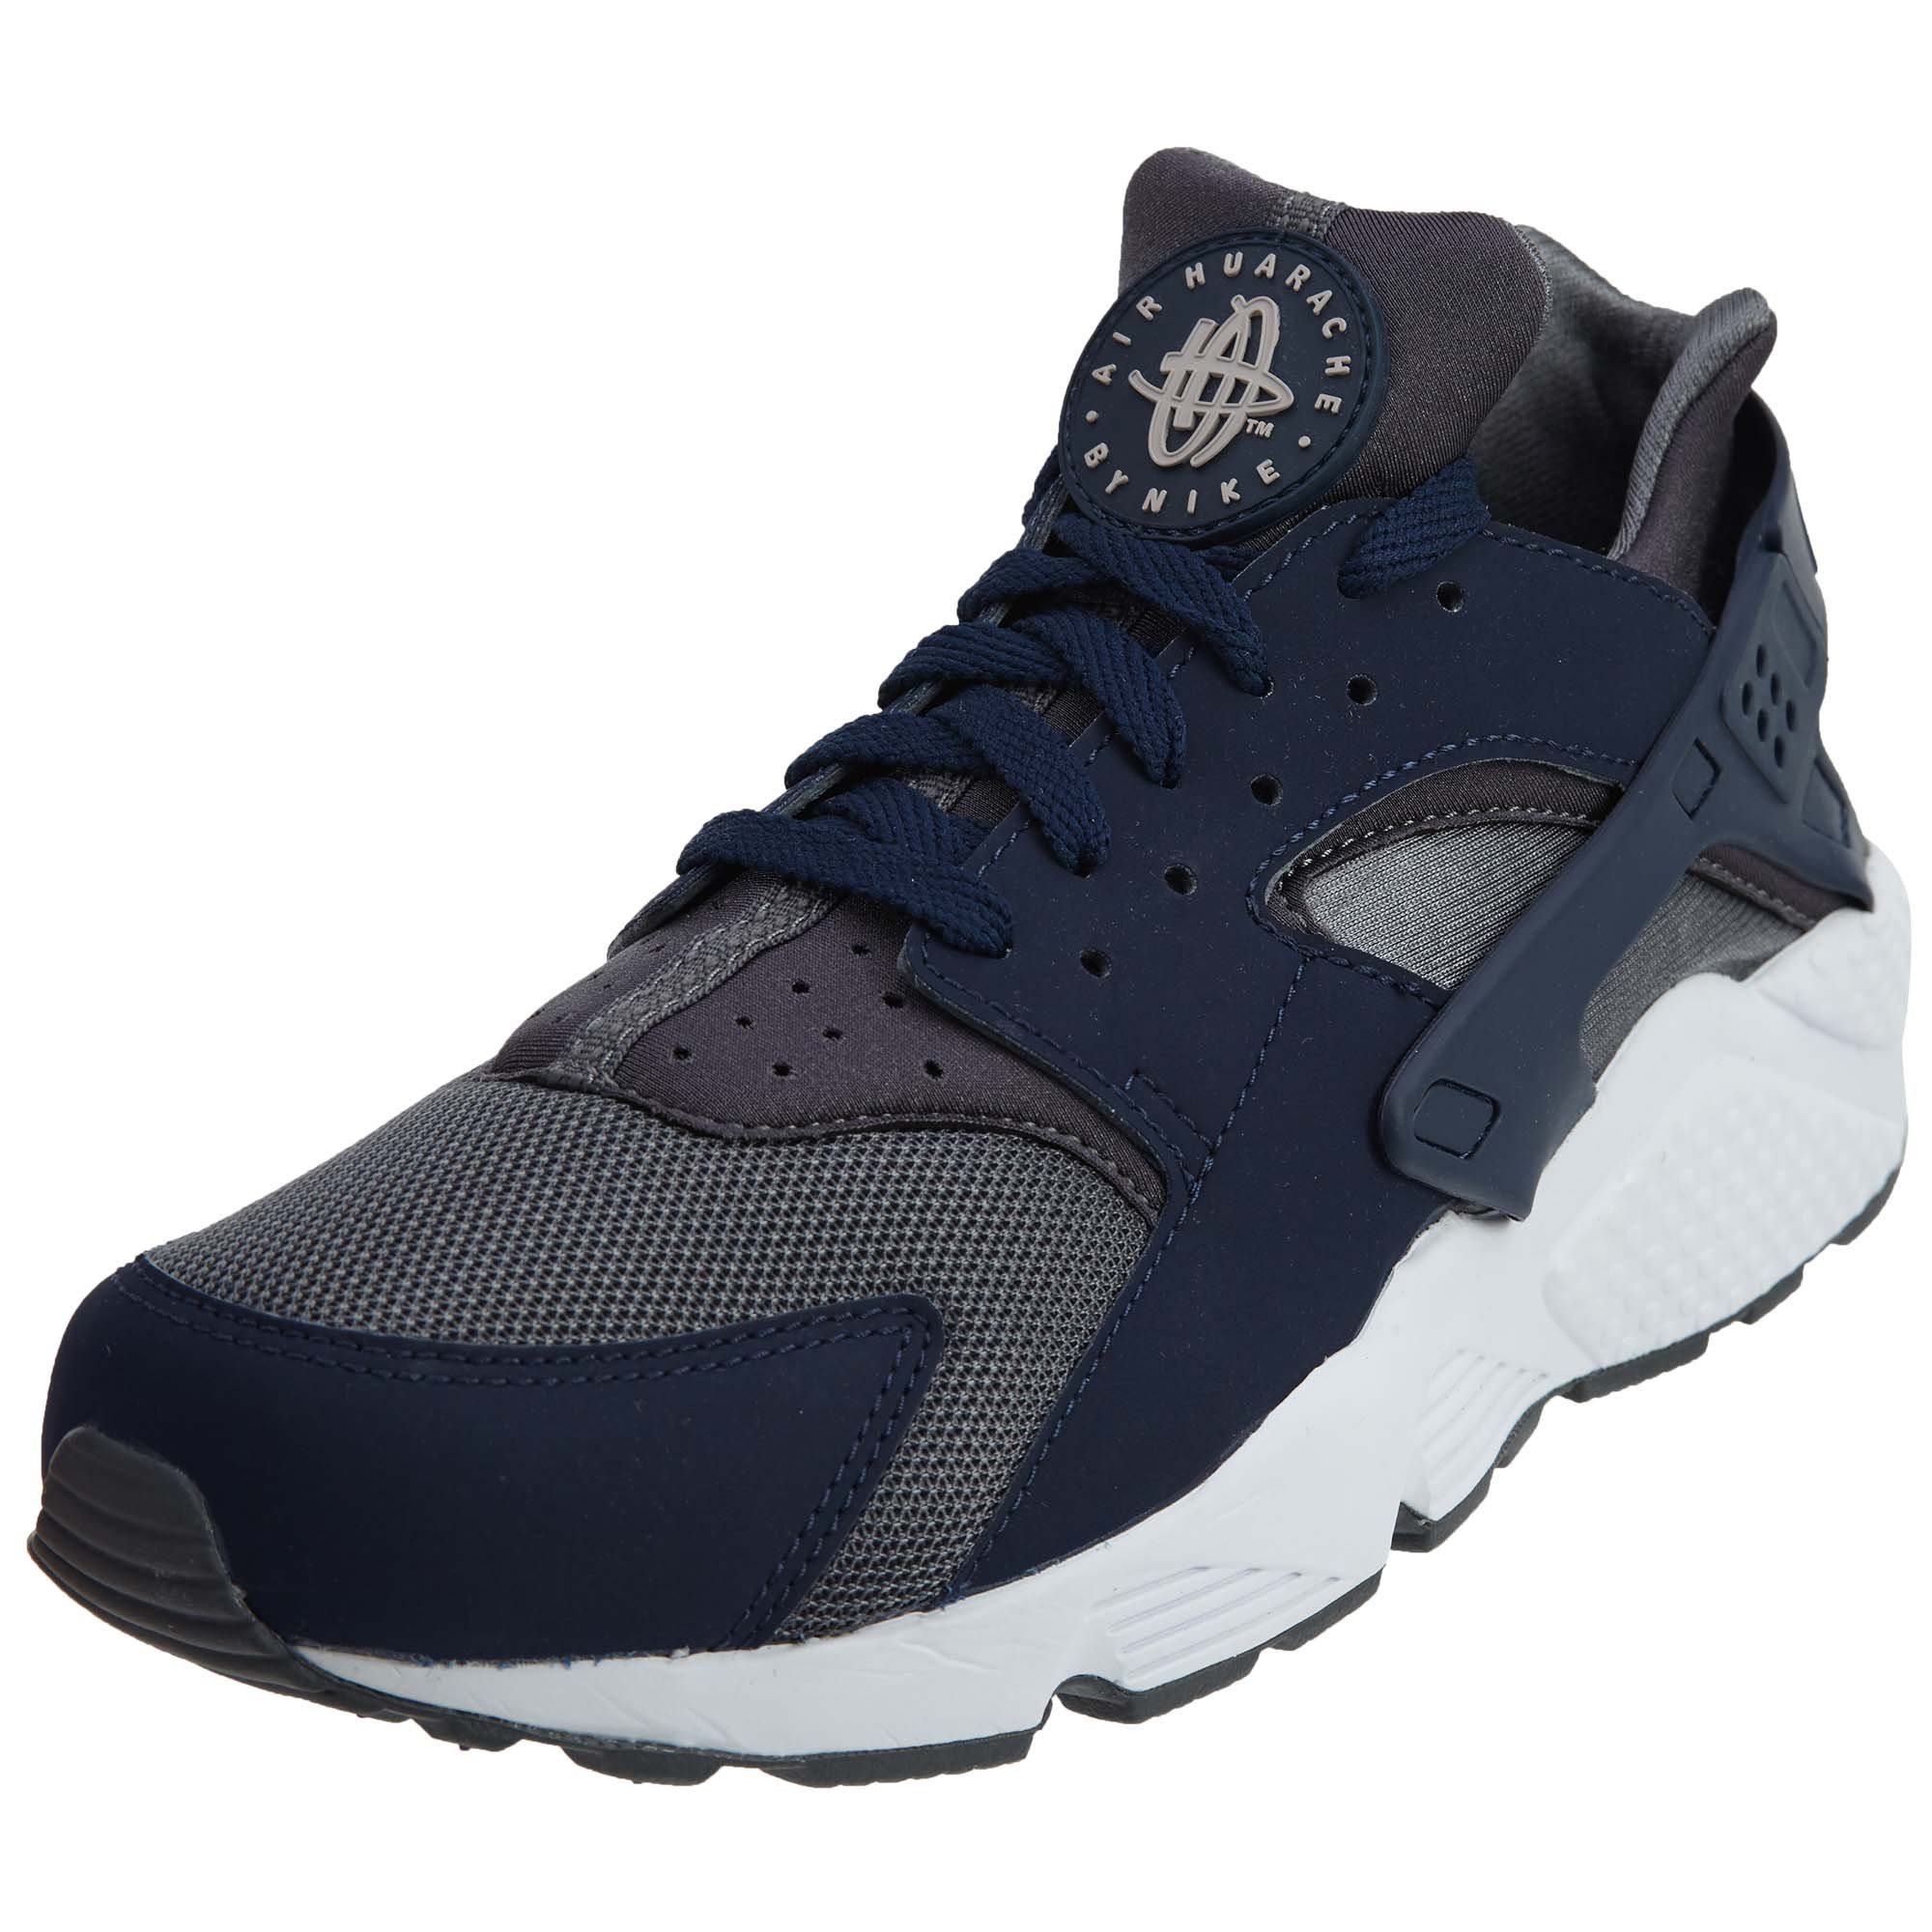 Nike Air Huarache mens fashion sneakers 318429 038_9.5   Dark Grey